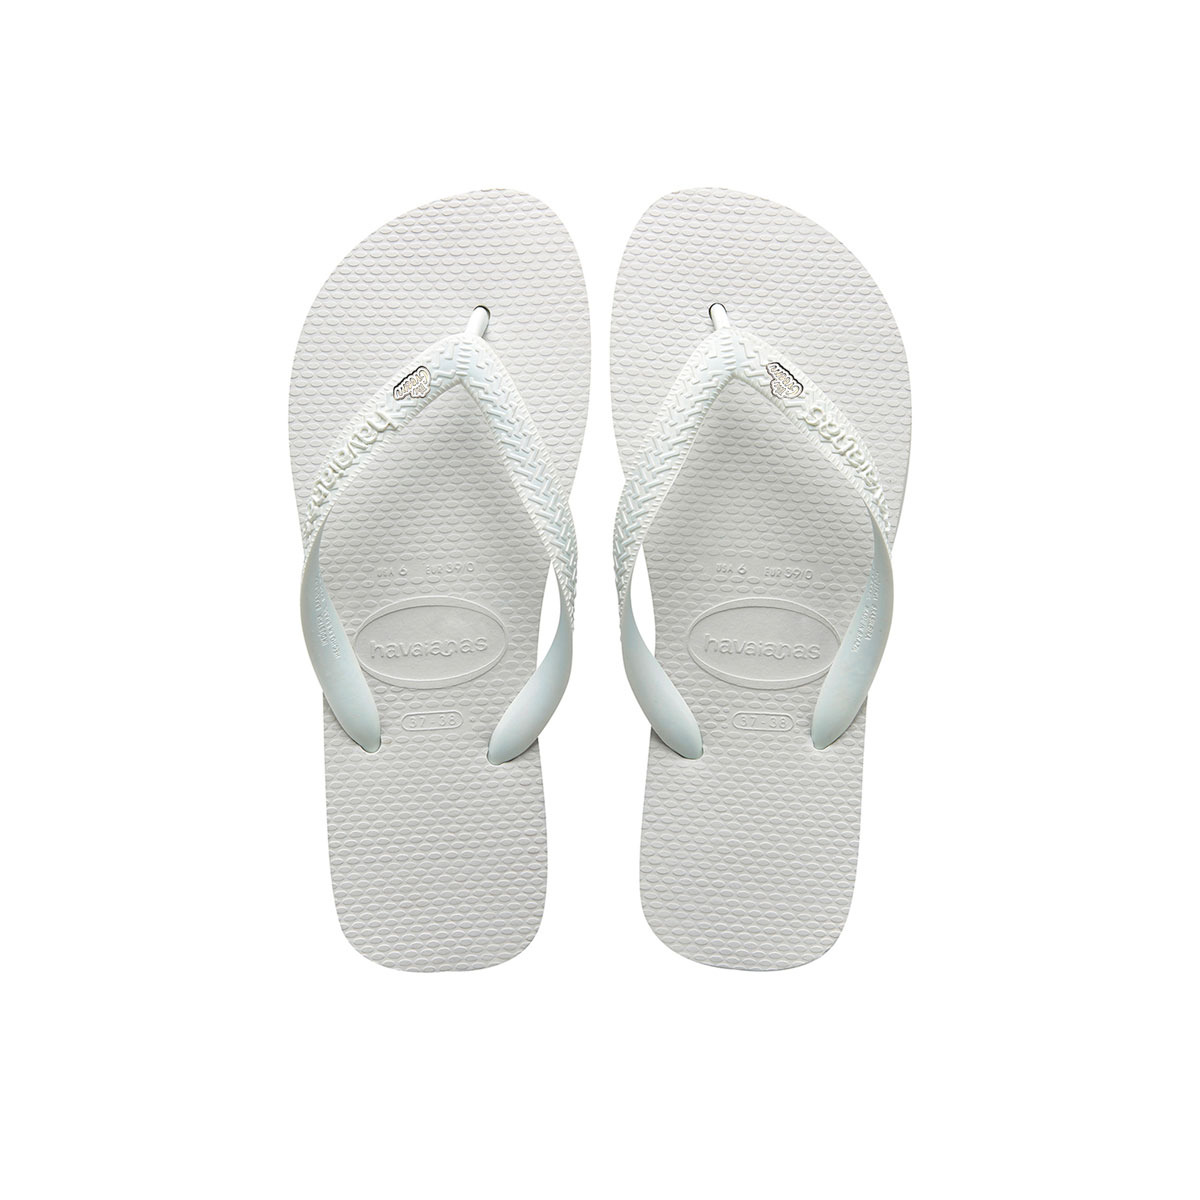 The Groom Silver & White Charm Havaianas Top White Wedding Gift